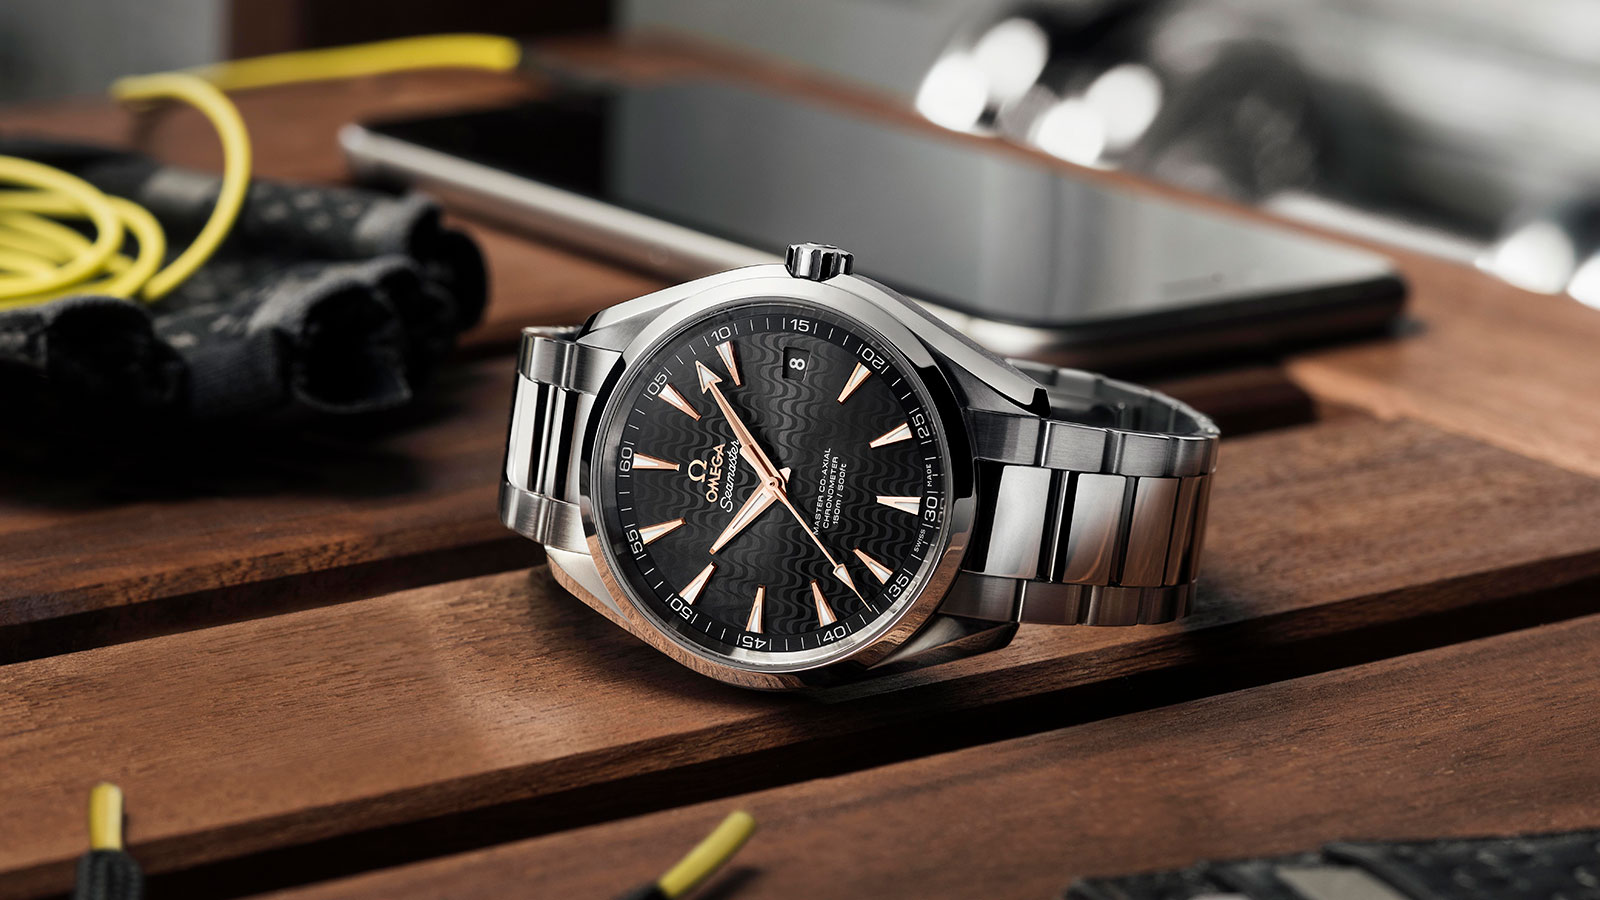 Seamaster アクアテラ 150M Aqua Terra 150M Omega Master Co‑Axial 41.5 mm ウォッチ - 231.10.42.21.01.006